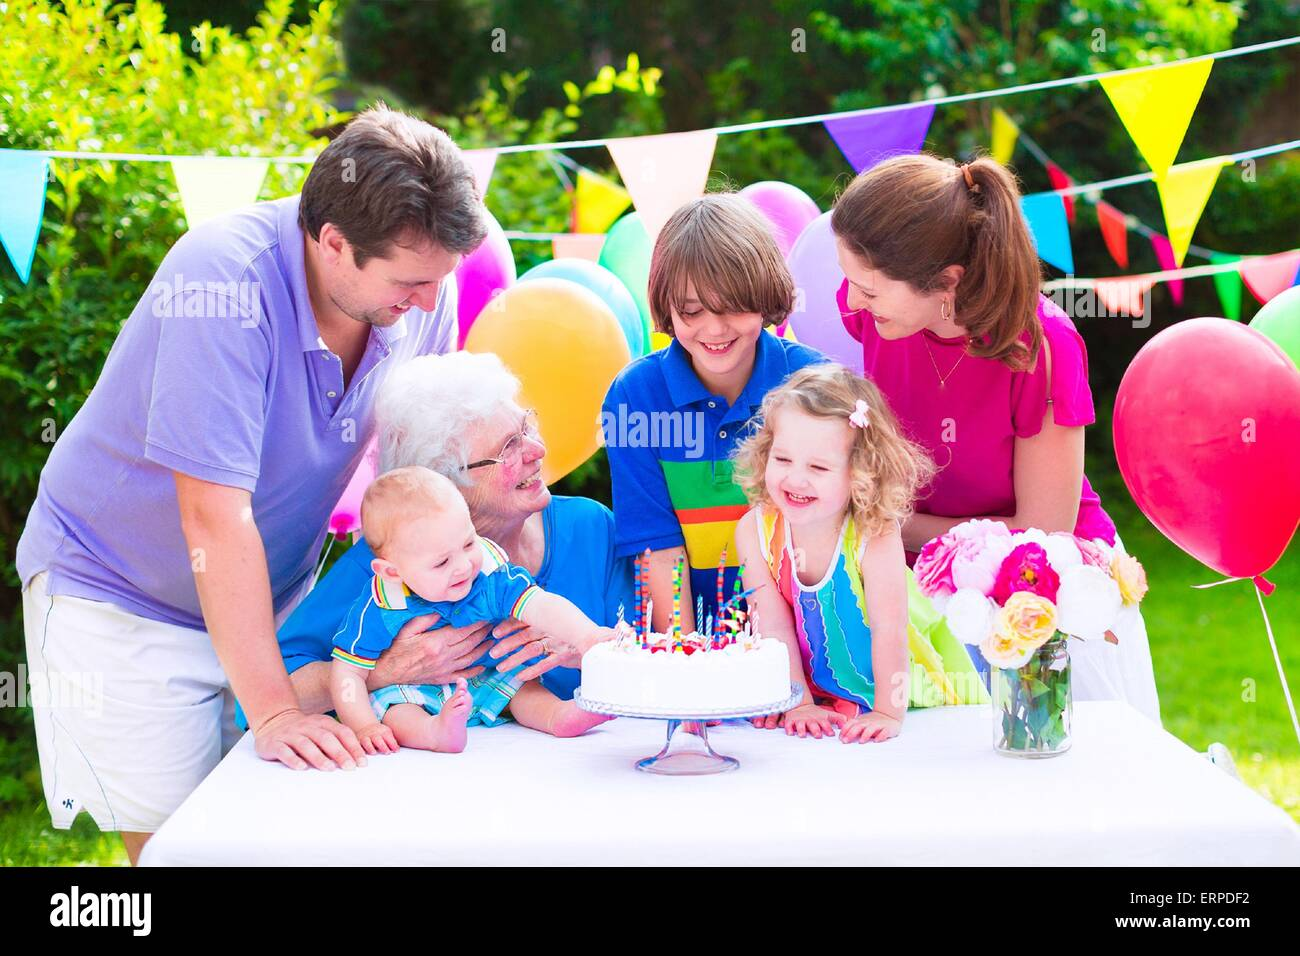 Big family with three kids and grandmother enjoying birthday party with cake blowing candles in garden decorated Stock Photo